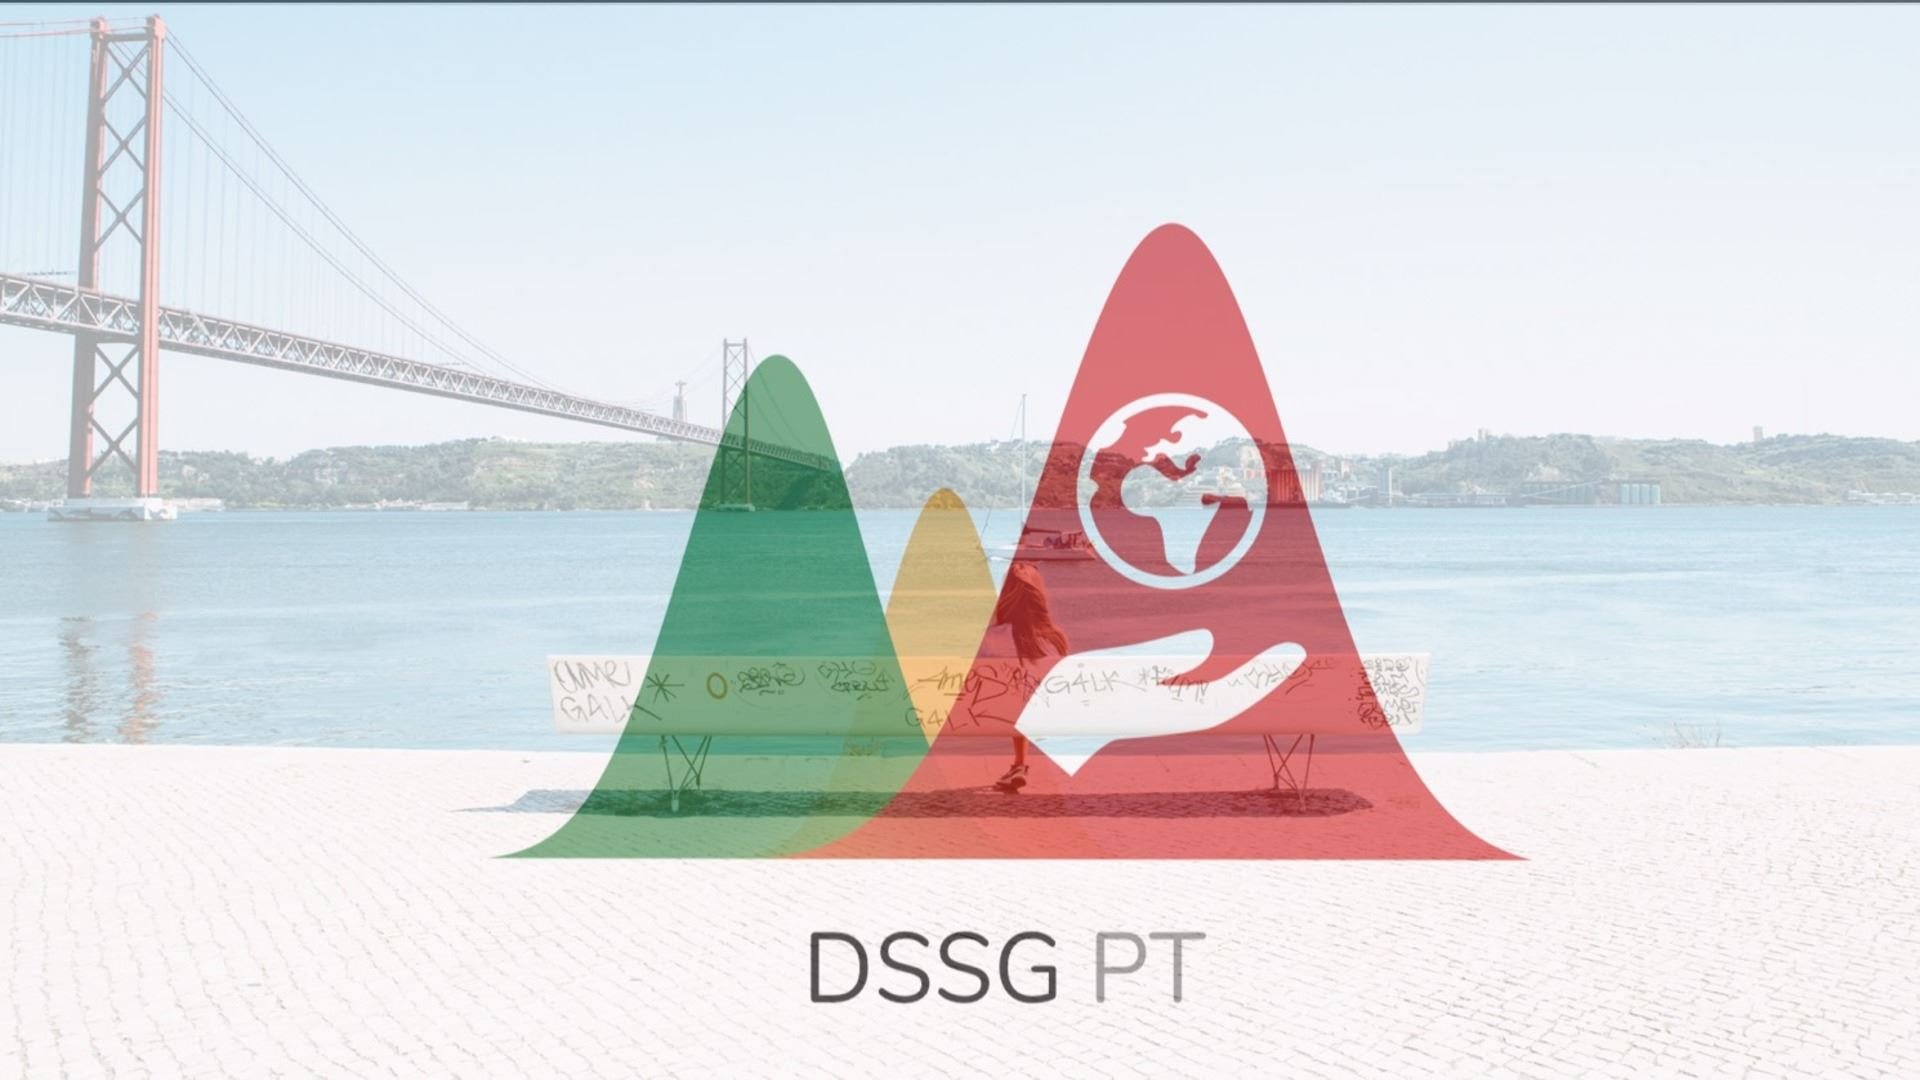 Data Science for Social Good Portugal: Presentation Event (Lisbon)